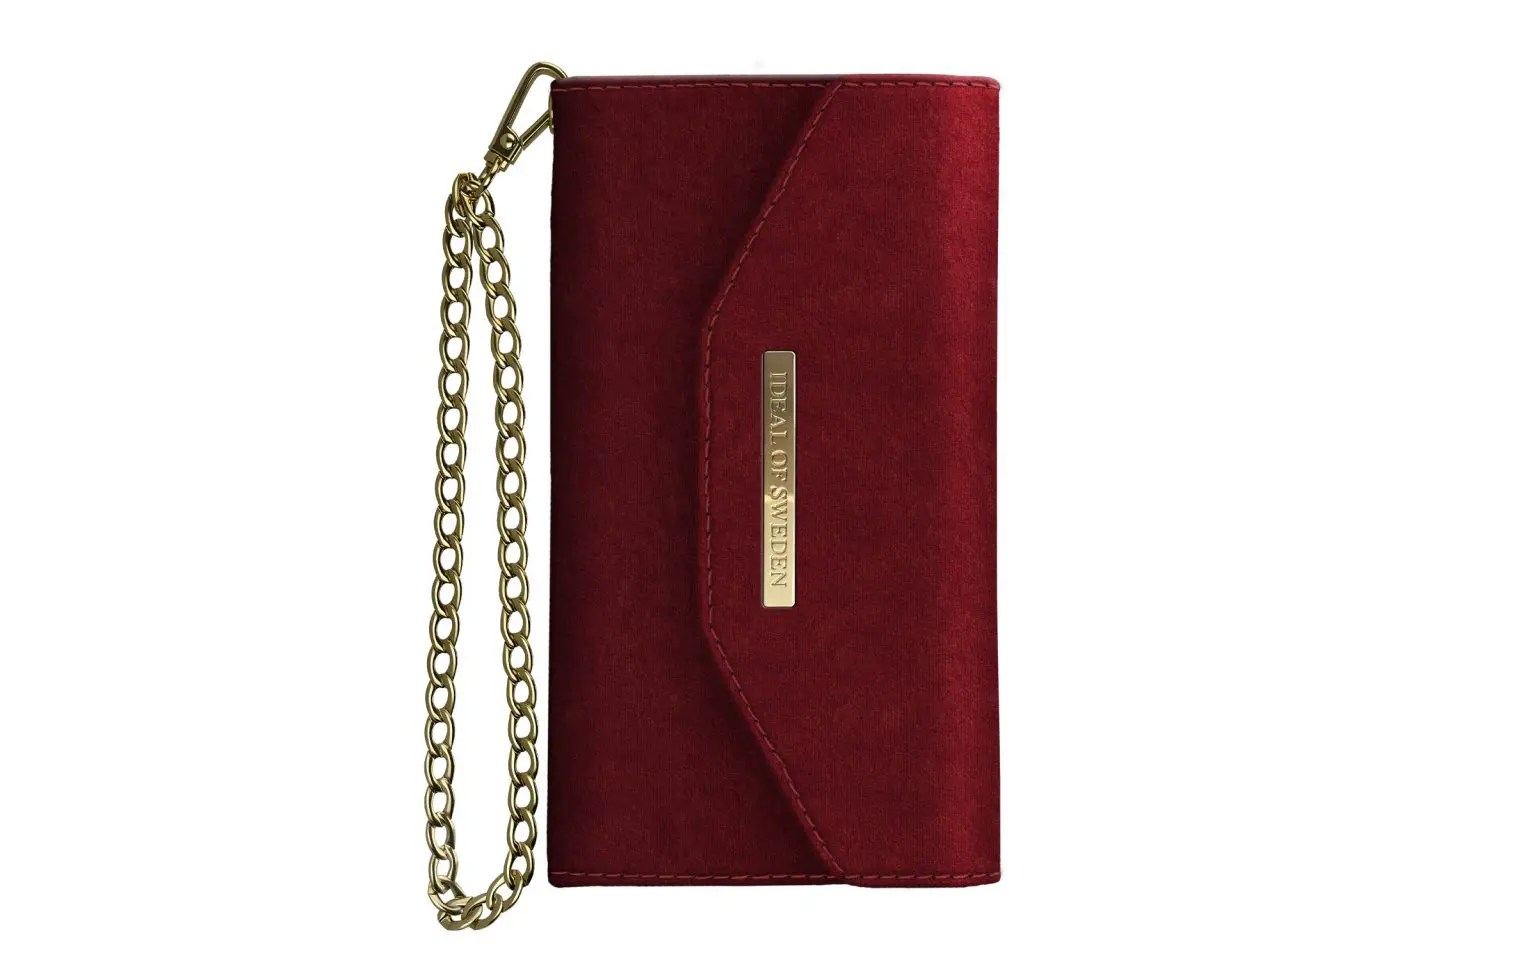 iDEAL of Sweden Mayfair Clutch Velvet iPhone 8 7 6 6S Red - Hurry Skurry b9af102a0c6c5